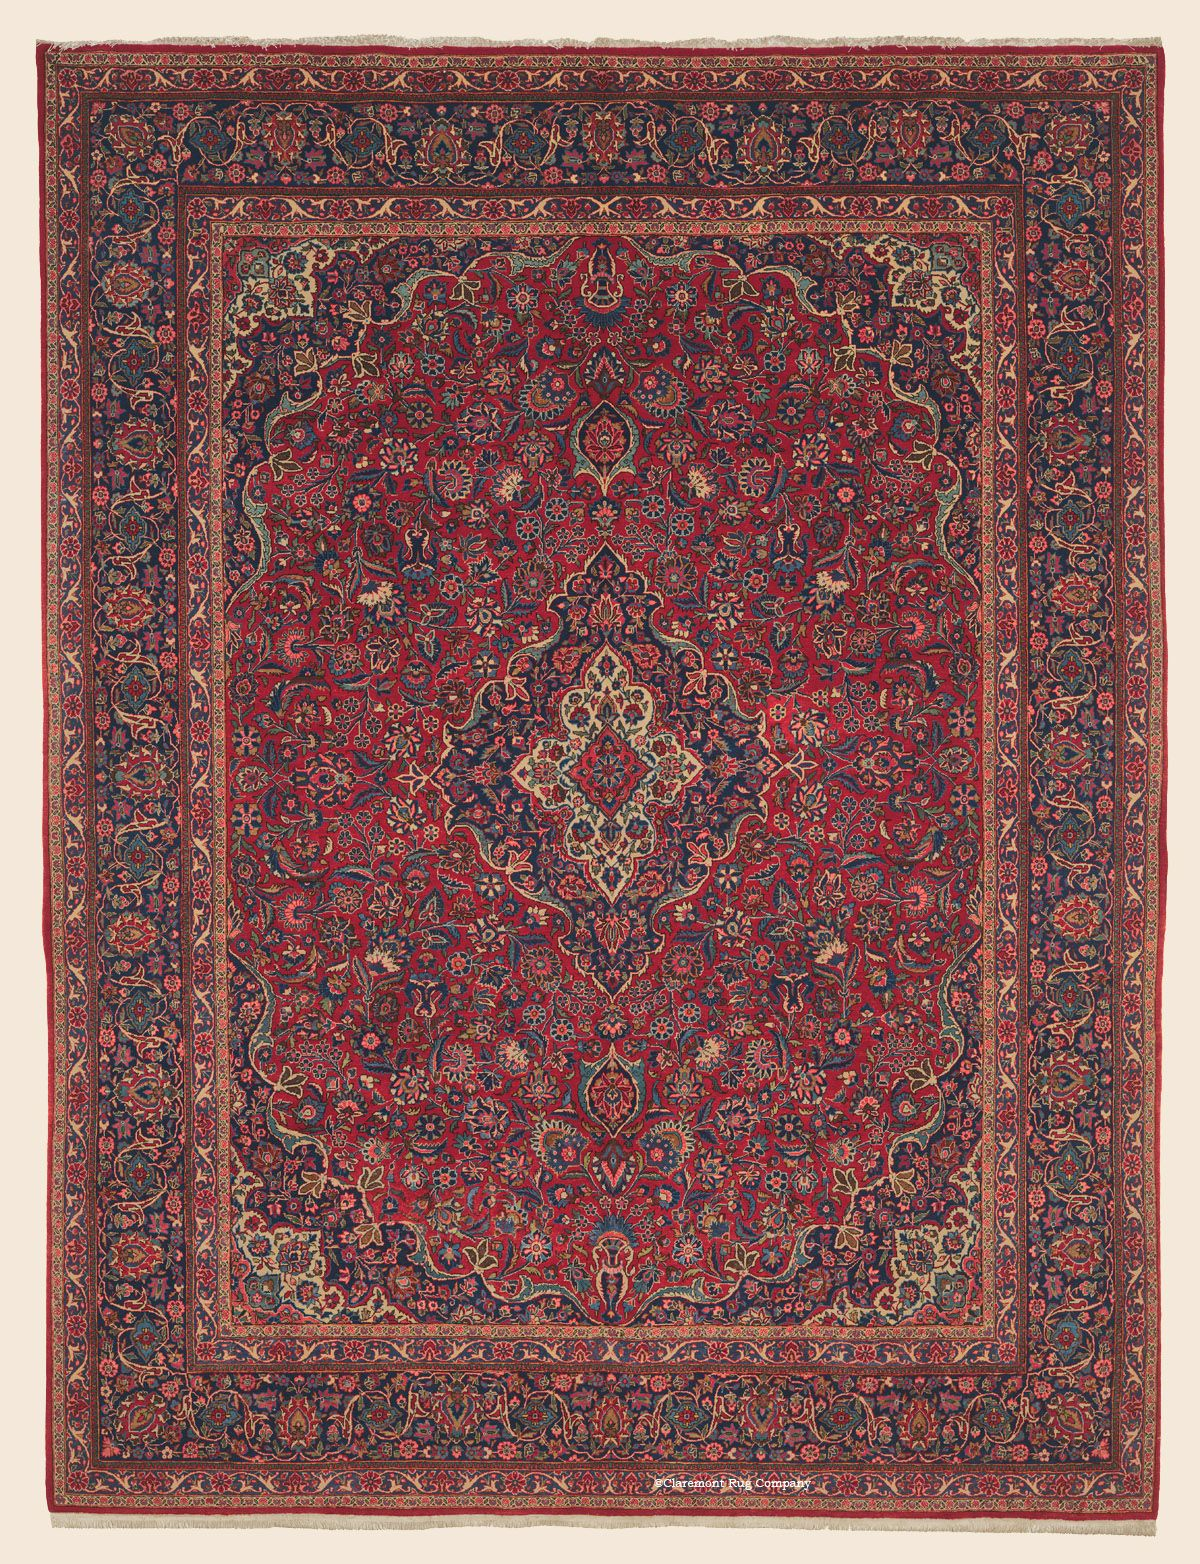 Kashan 9 1 X 11 8 Circa 1930 Price 12 000 Central Persian Antique Rug Claremont Rug Company Claremont Rug Company Antique Oriental Rugs Rugs